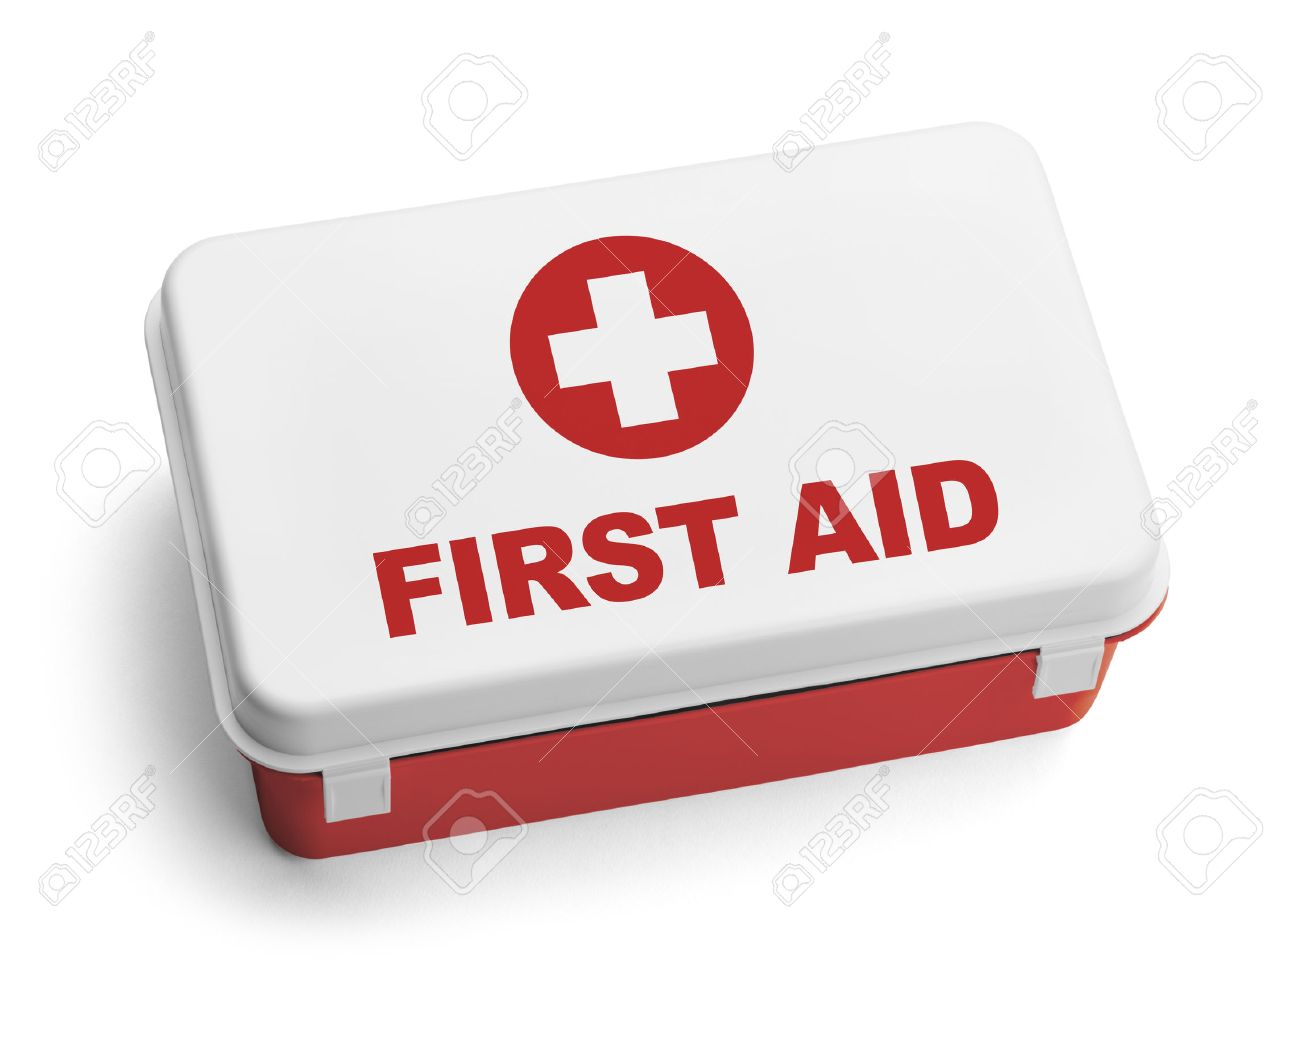 Red And White Plastic First Aid Kit Box Isolated On White Background Stock Photo